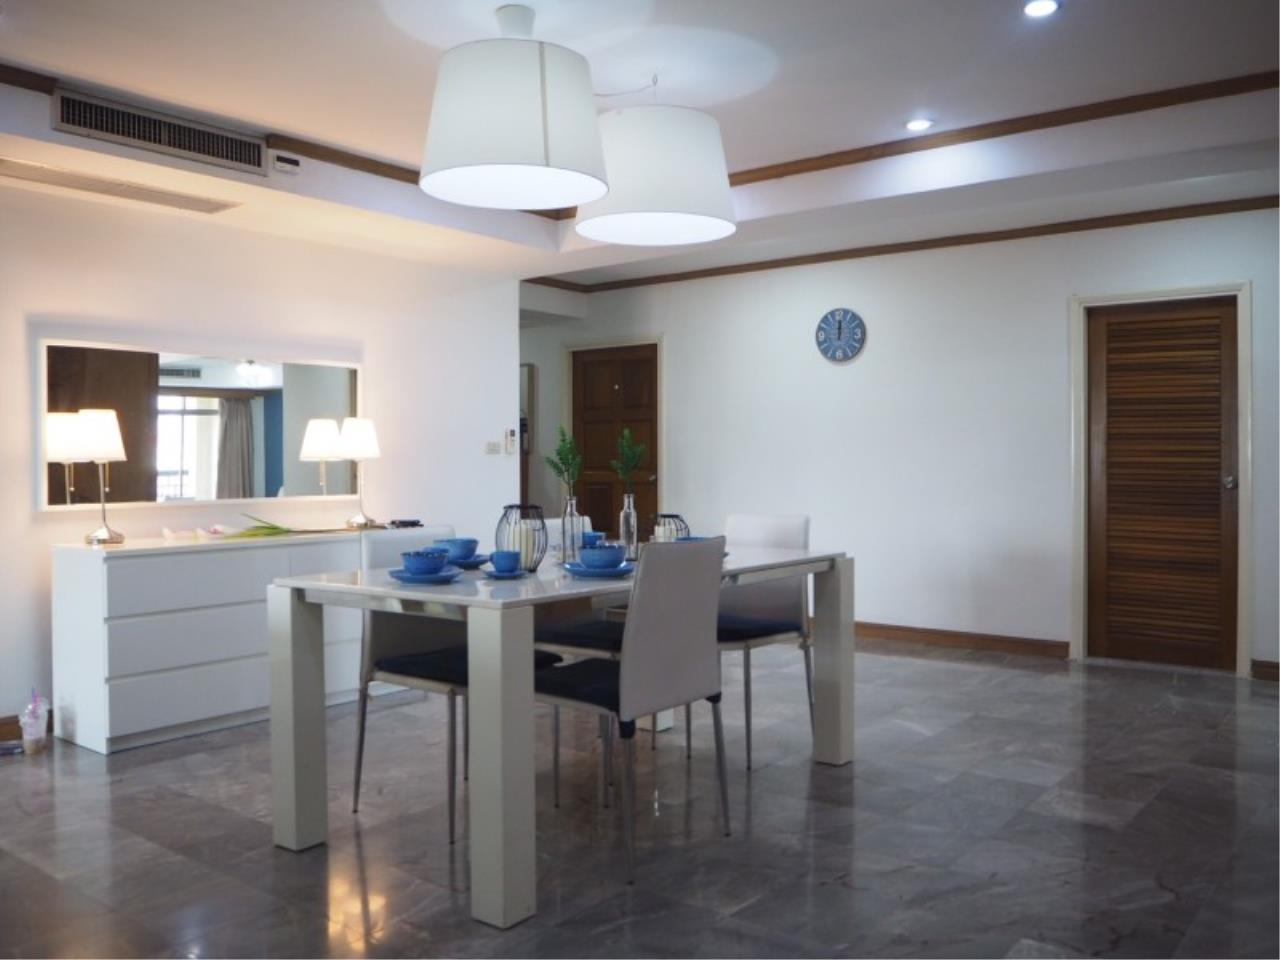 RE/MAX All Star Realty Agency's Royal Castle 4bed 4bath 202sqm for rent (BTS Phrom Phong) 5